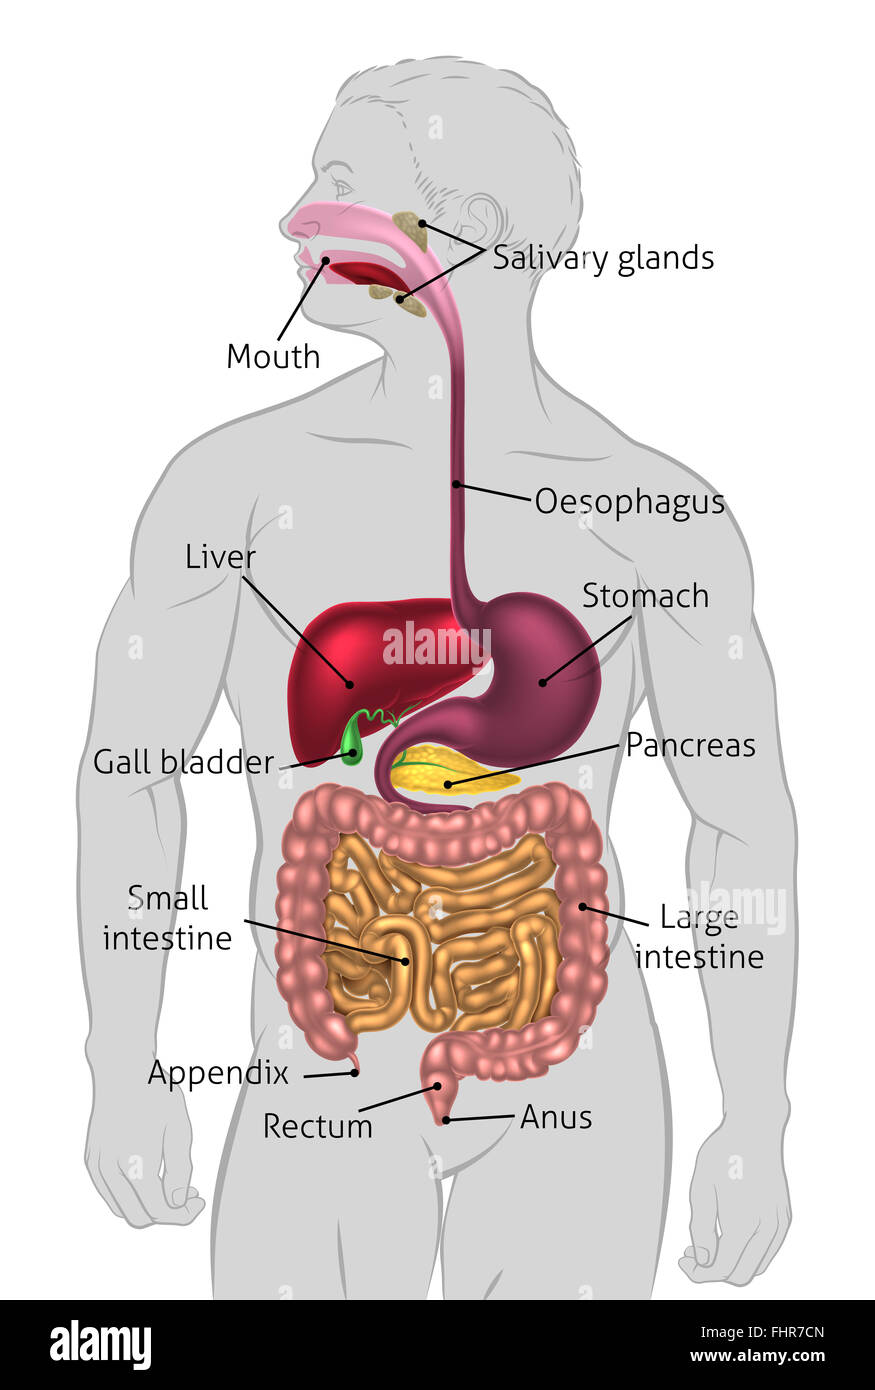 The human digestive system digestive tract or alimentary canal the human digestive system digestive tract or alimentary canal with labels labelled with uk spellings and labels like those in pooptronica